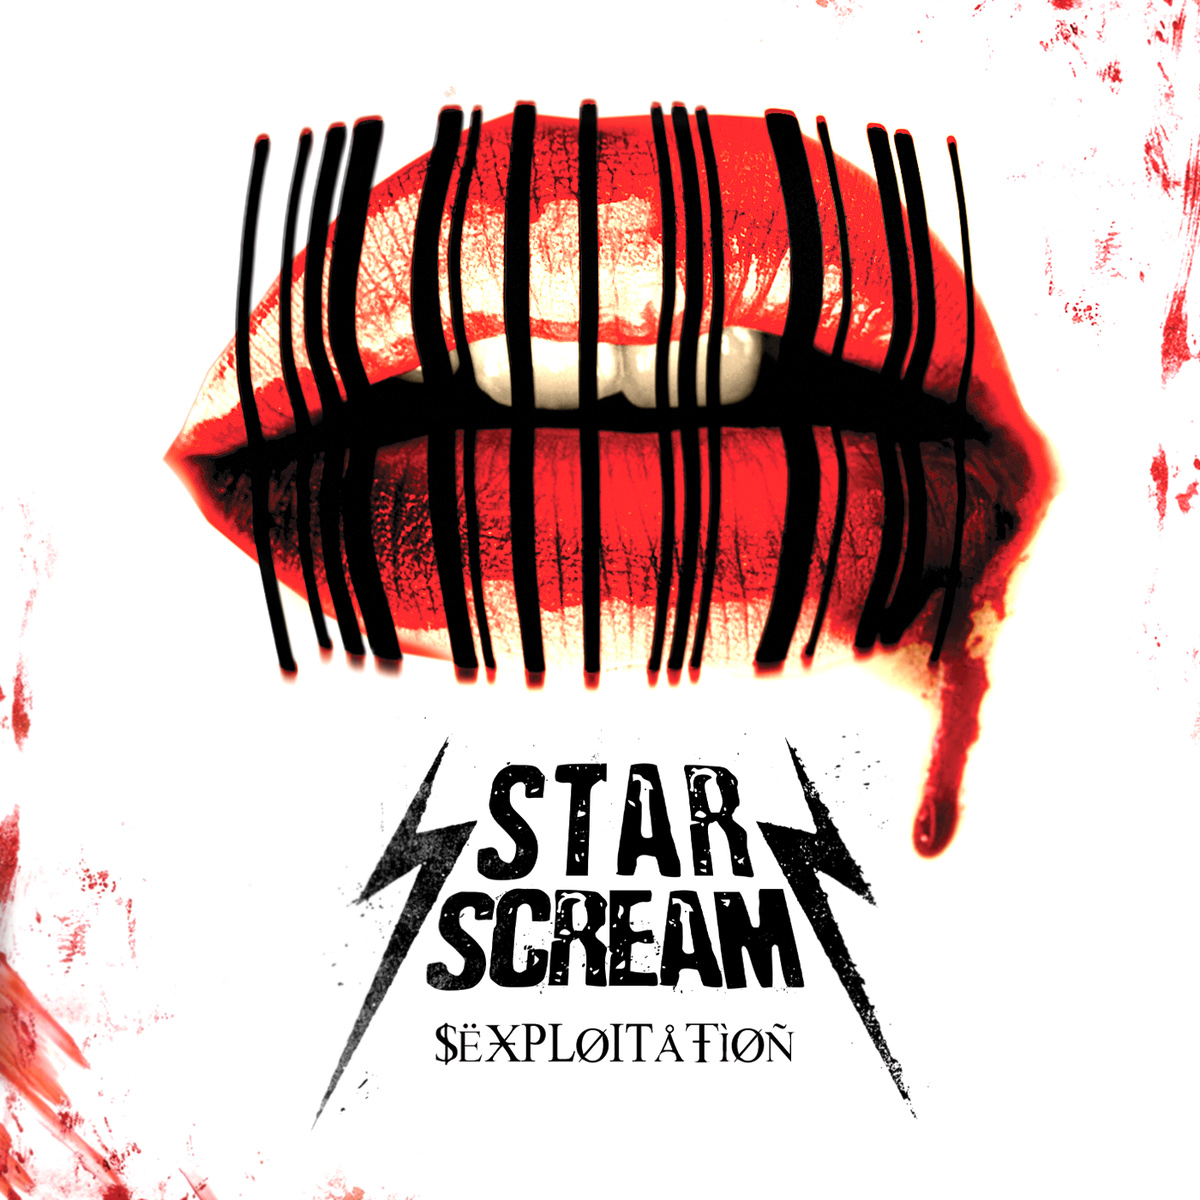 Tastes Like Rock -Star Scream - Sexploitation Review